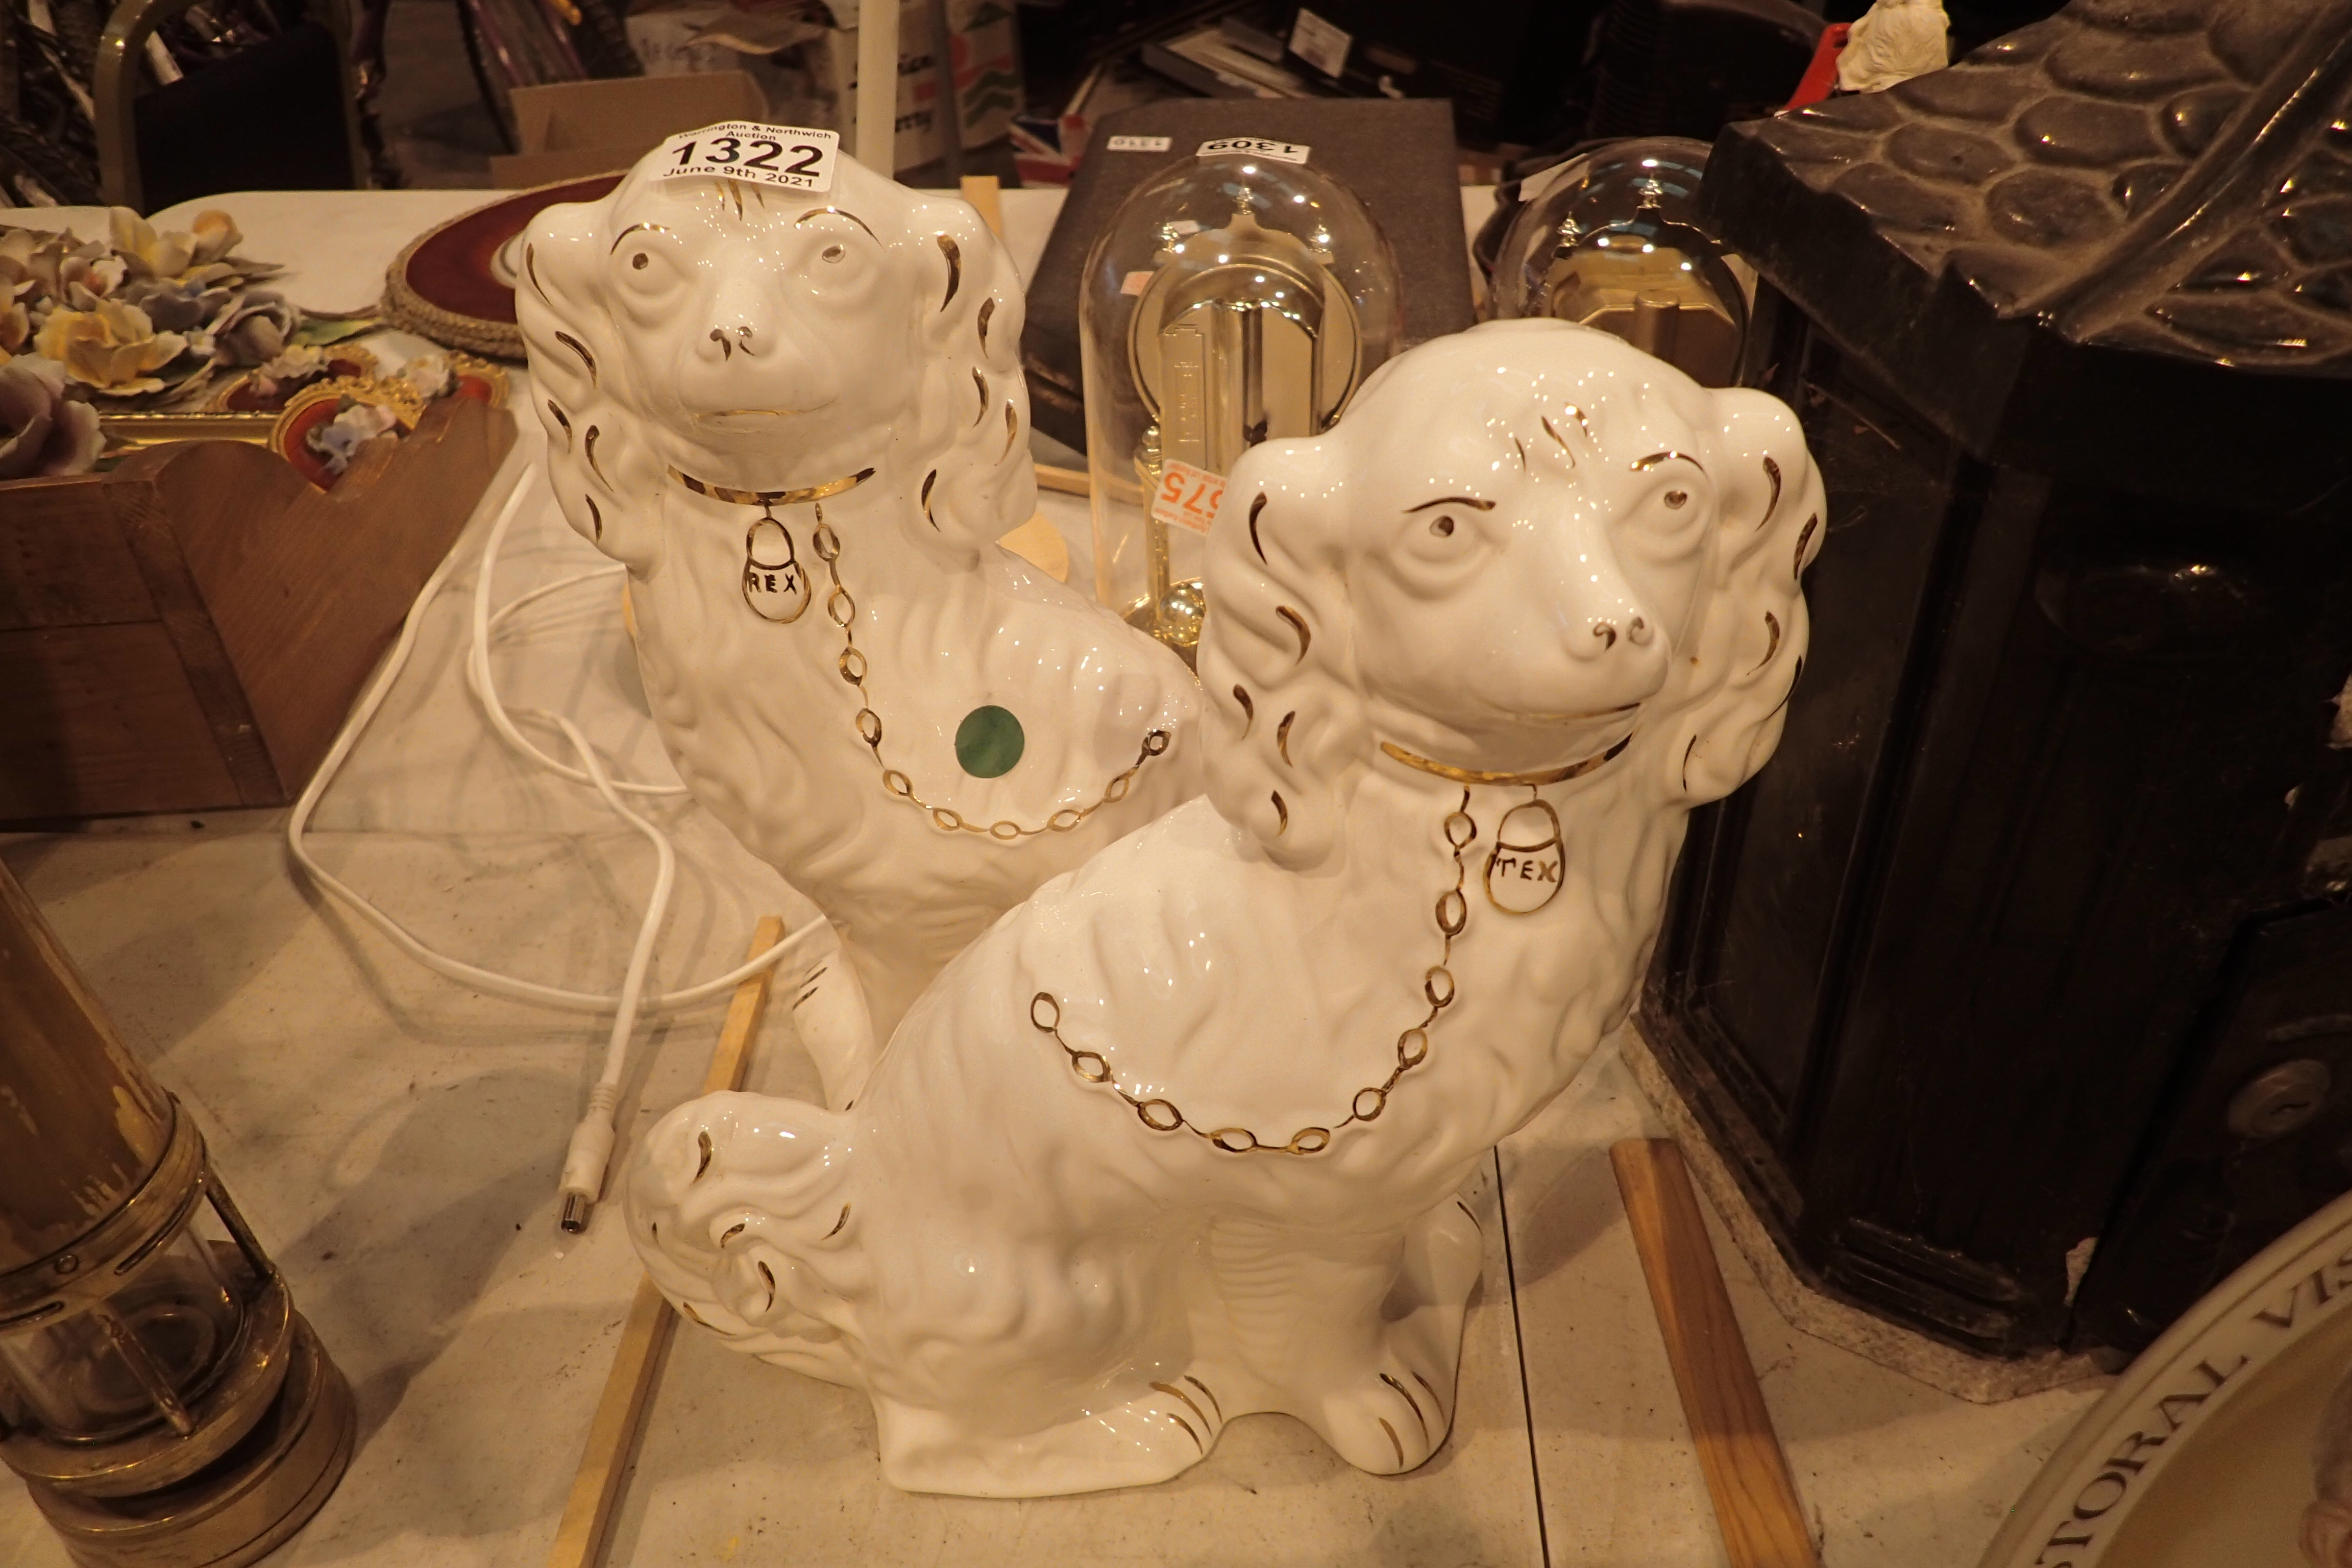 Pair of Staffordshire ceramic dogs. Not available for in-house P&P, contact Paul O'Hea at